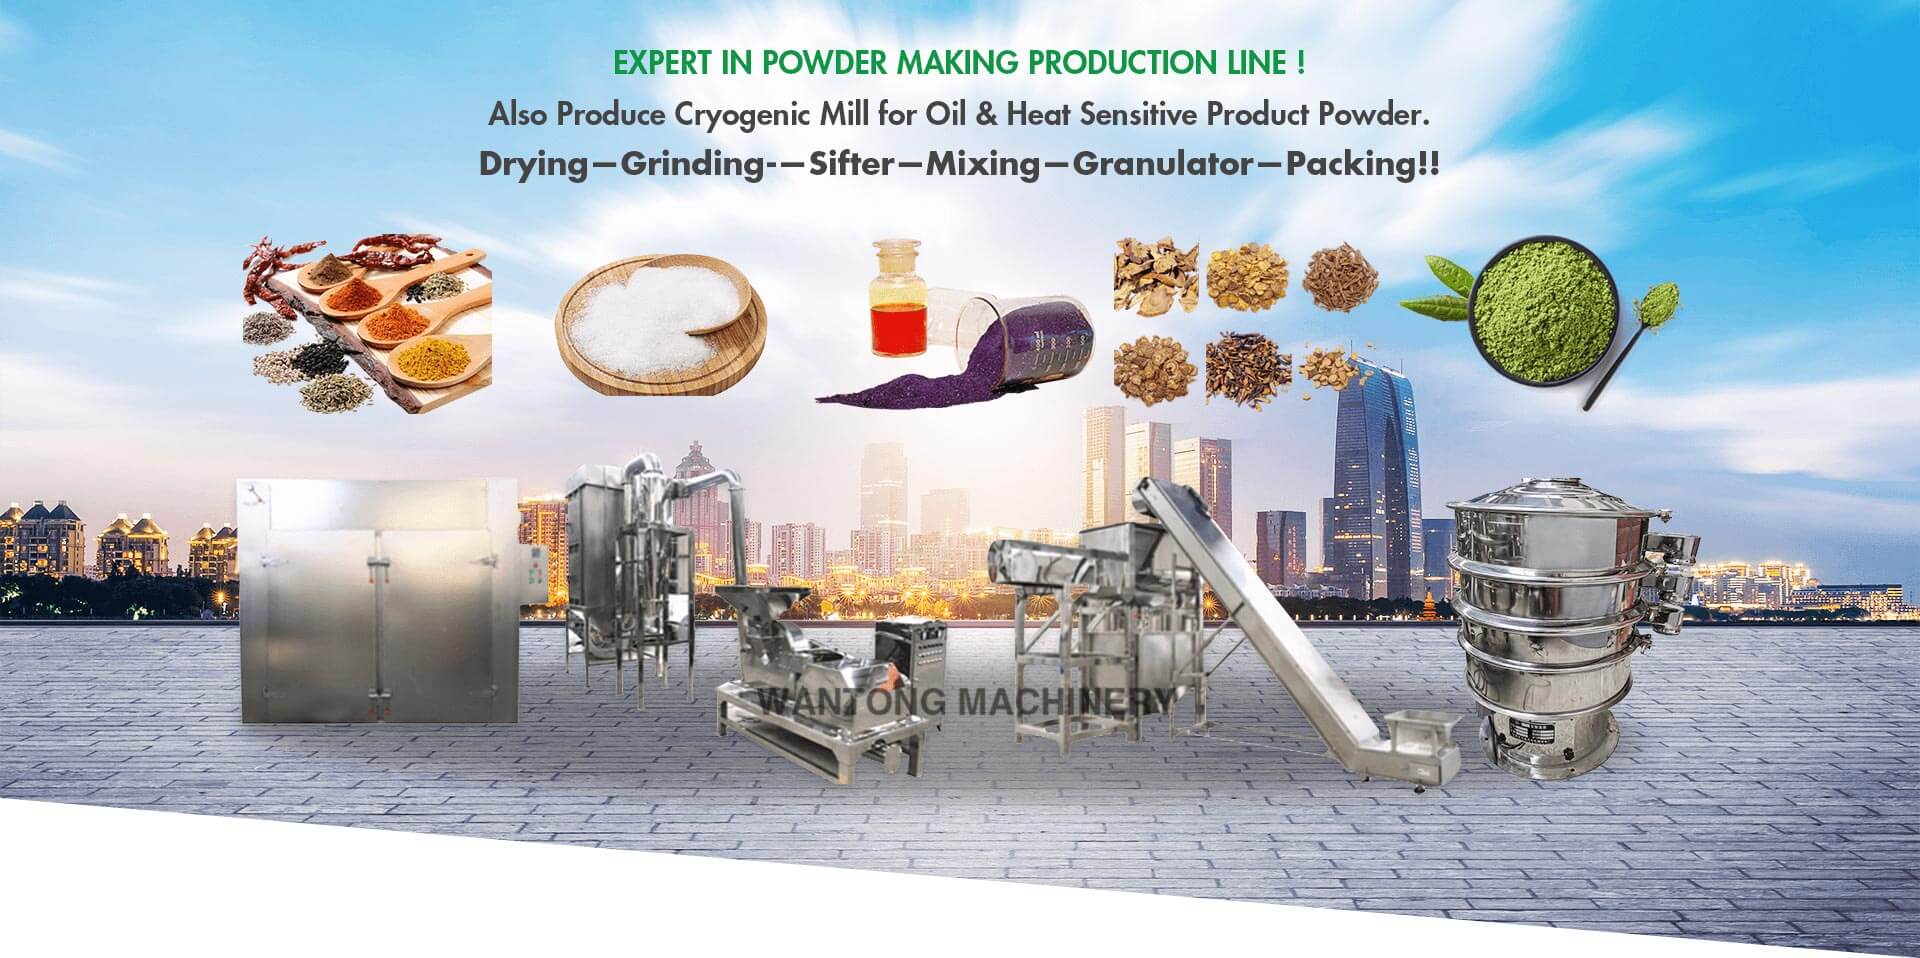 Expert in powder making production line